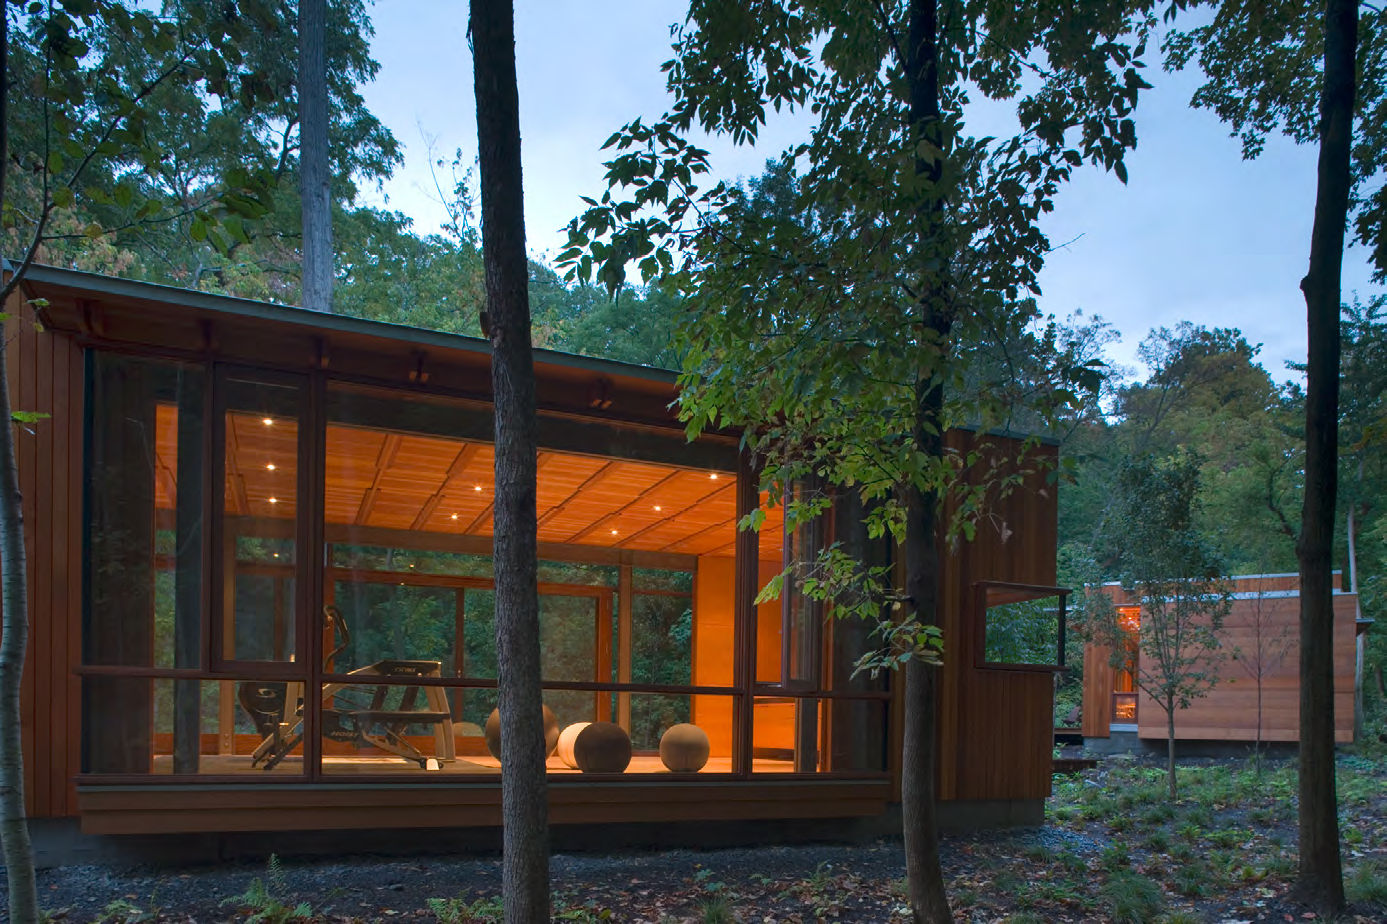 Exterior of the Combs Point Residence by Bohlin Cywinski Jackson